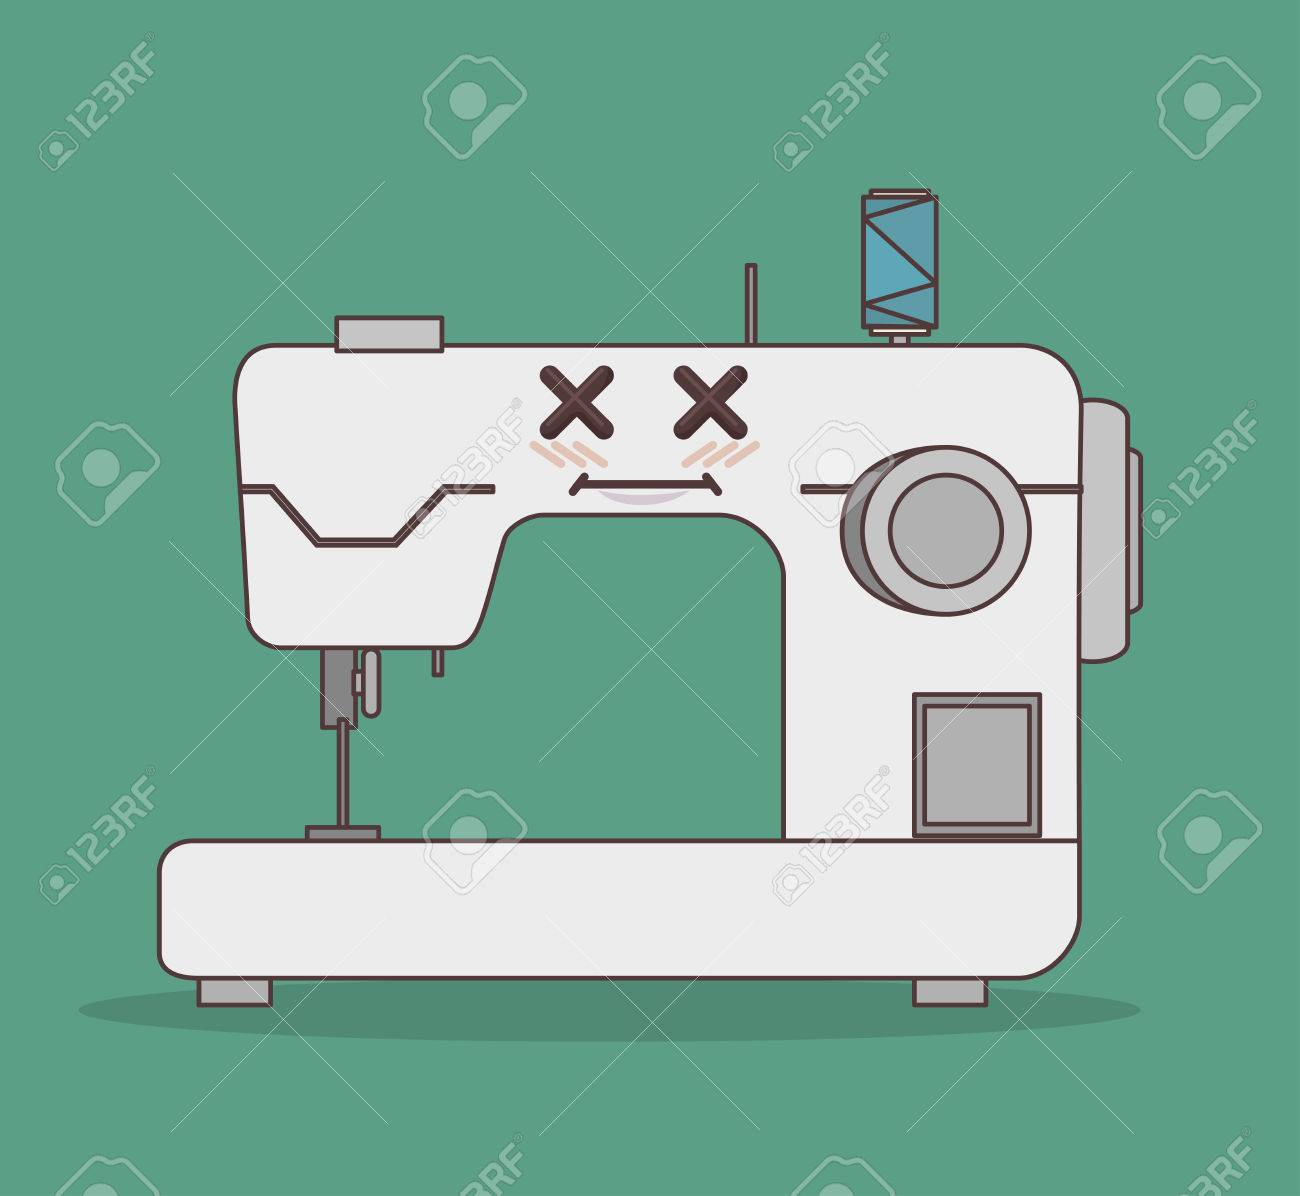 61749080 sewing machine character icon vector illustration graphic